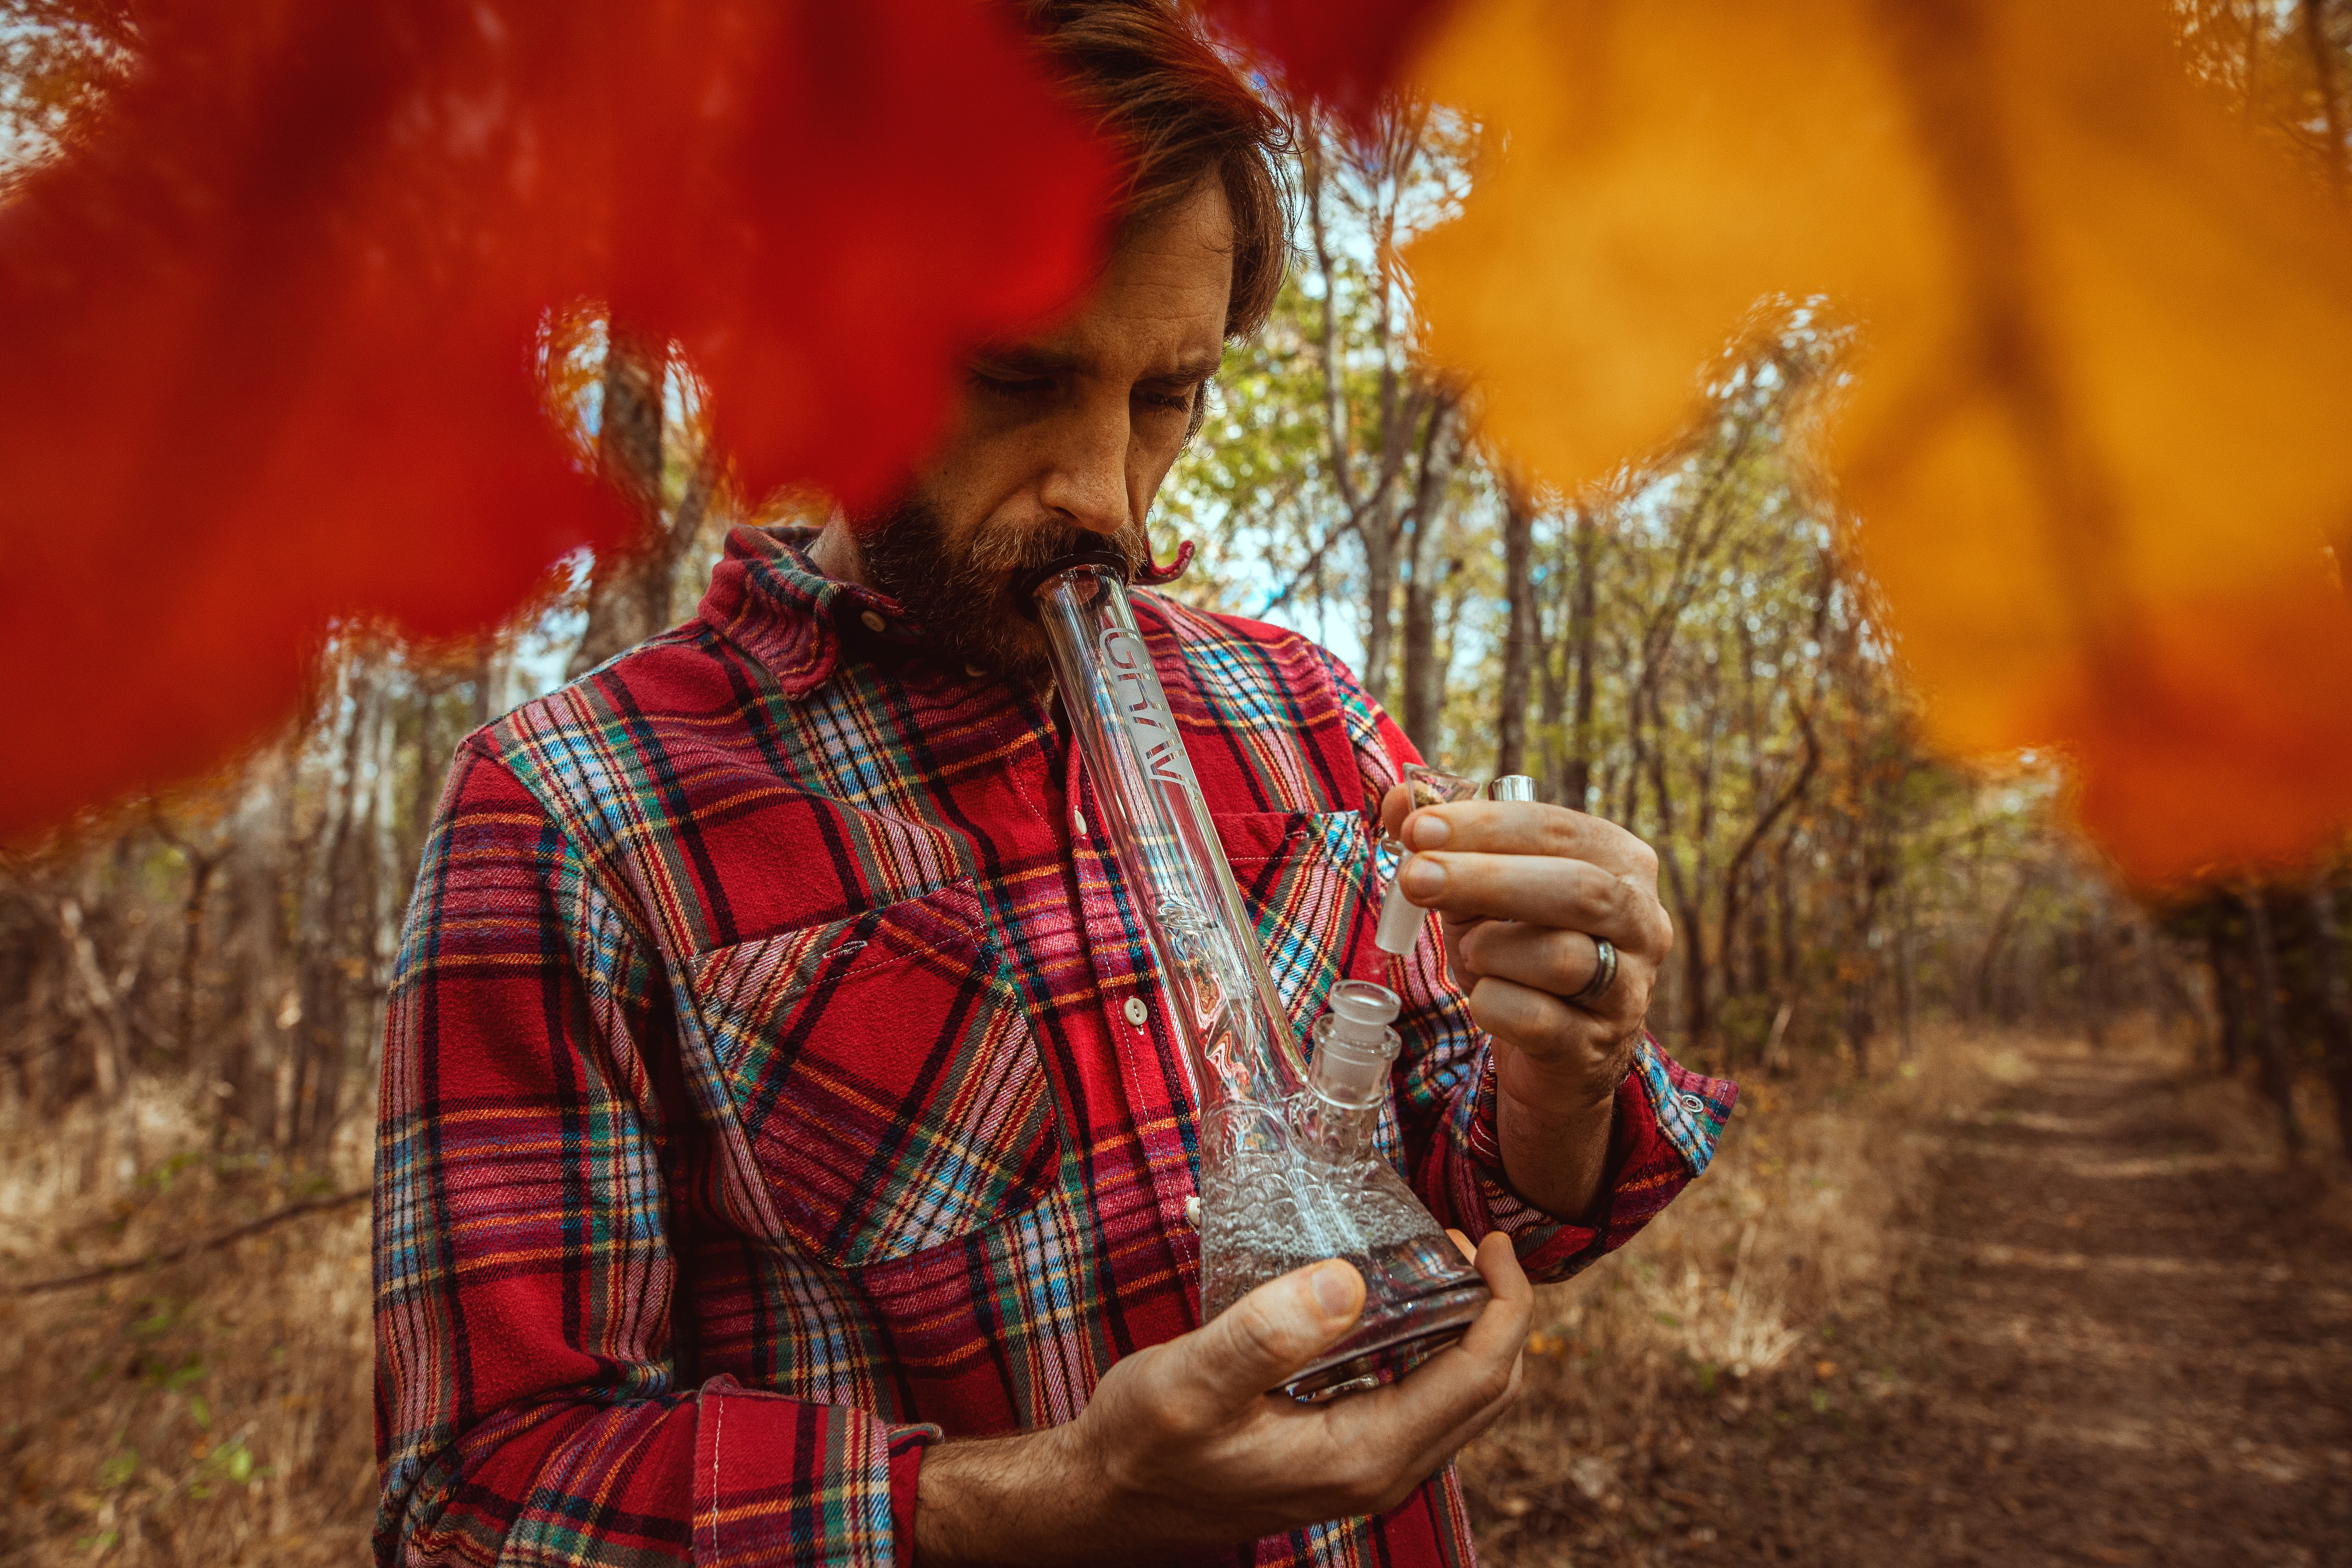 male smoking cannabis from a bong